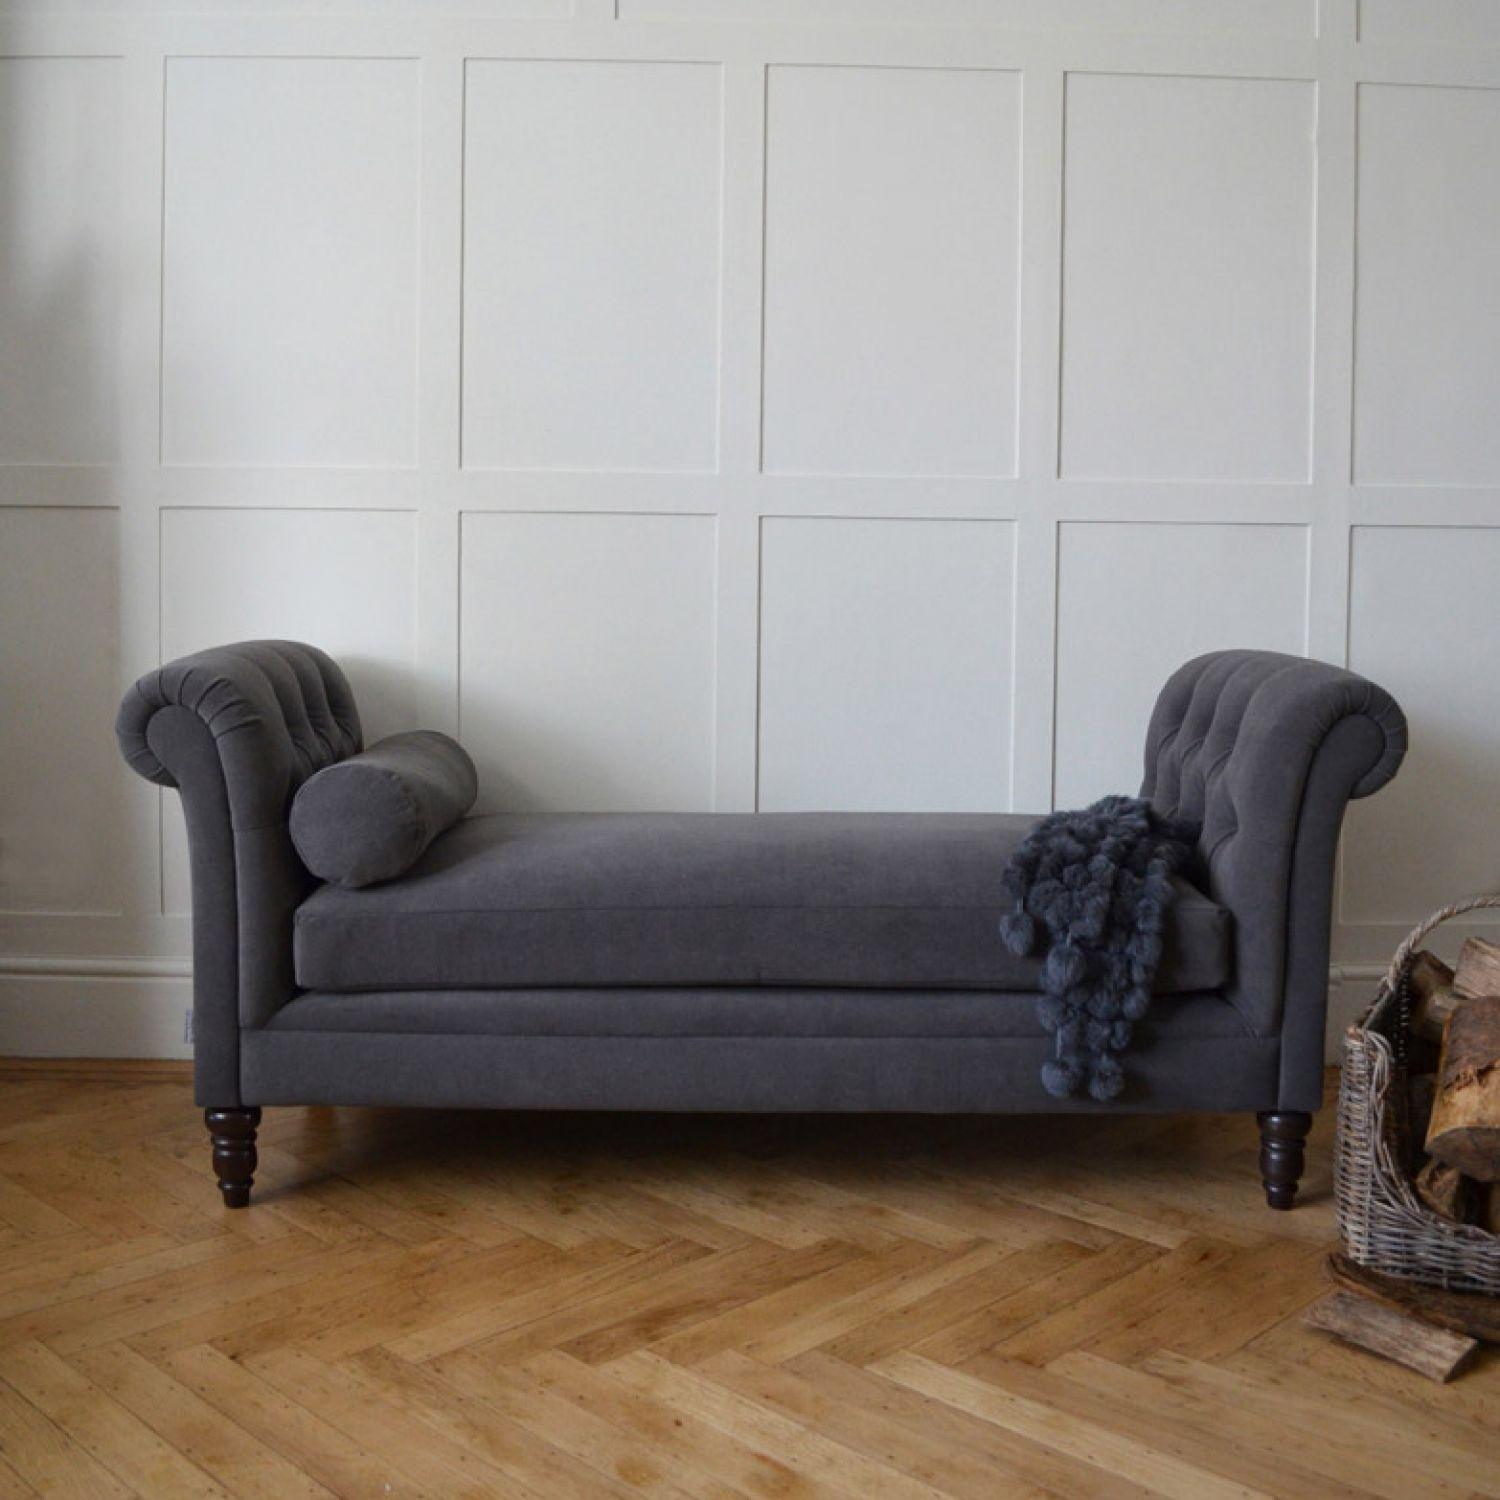 The Hunter Chaise Longue